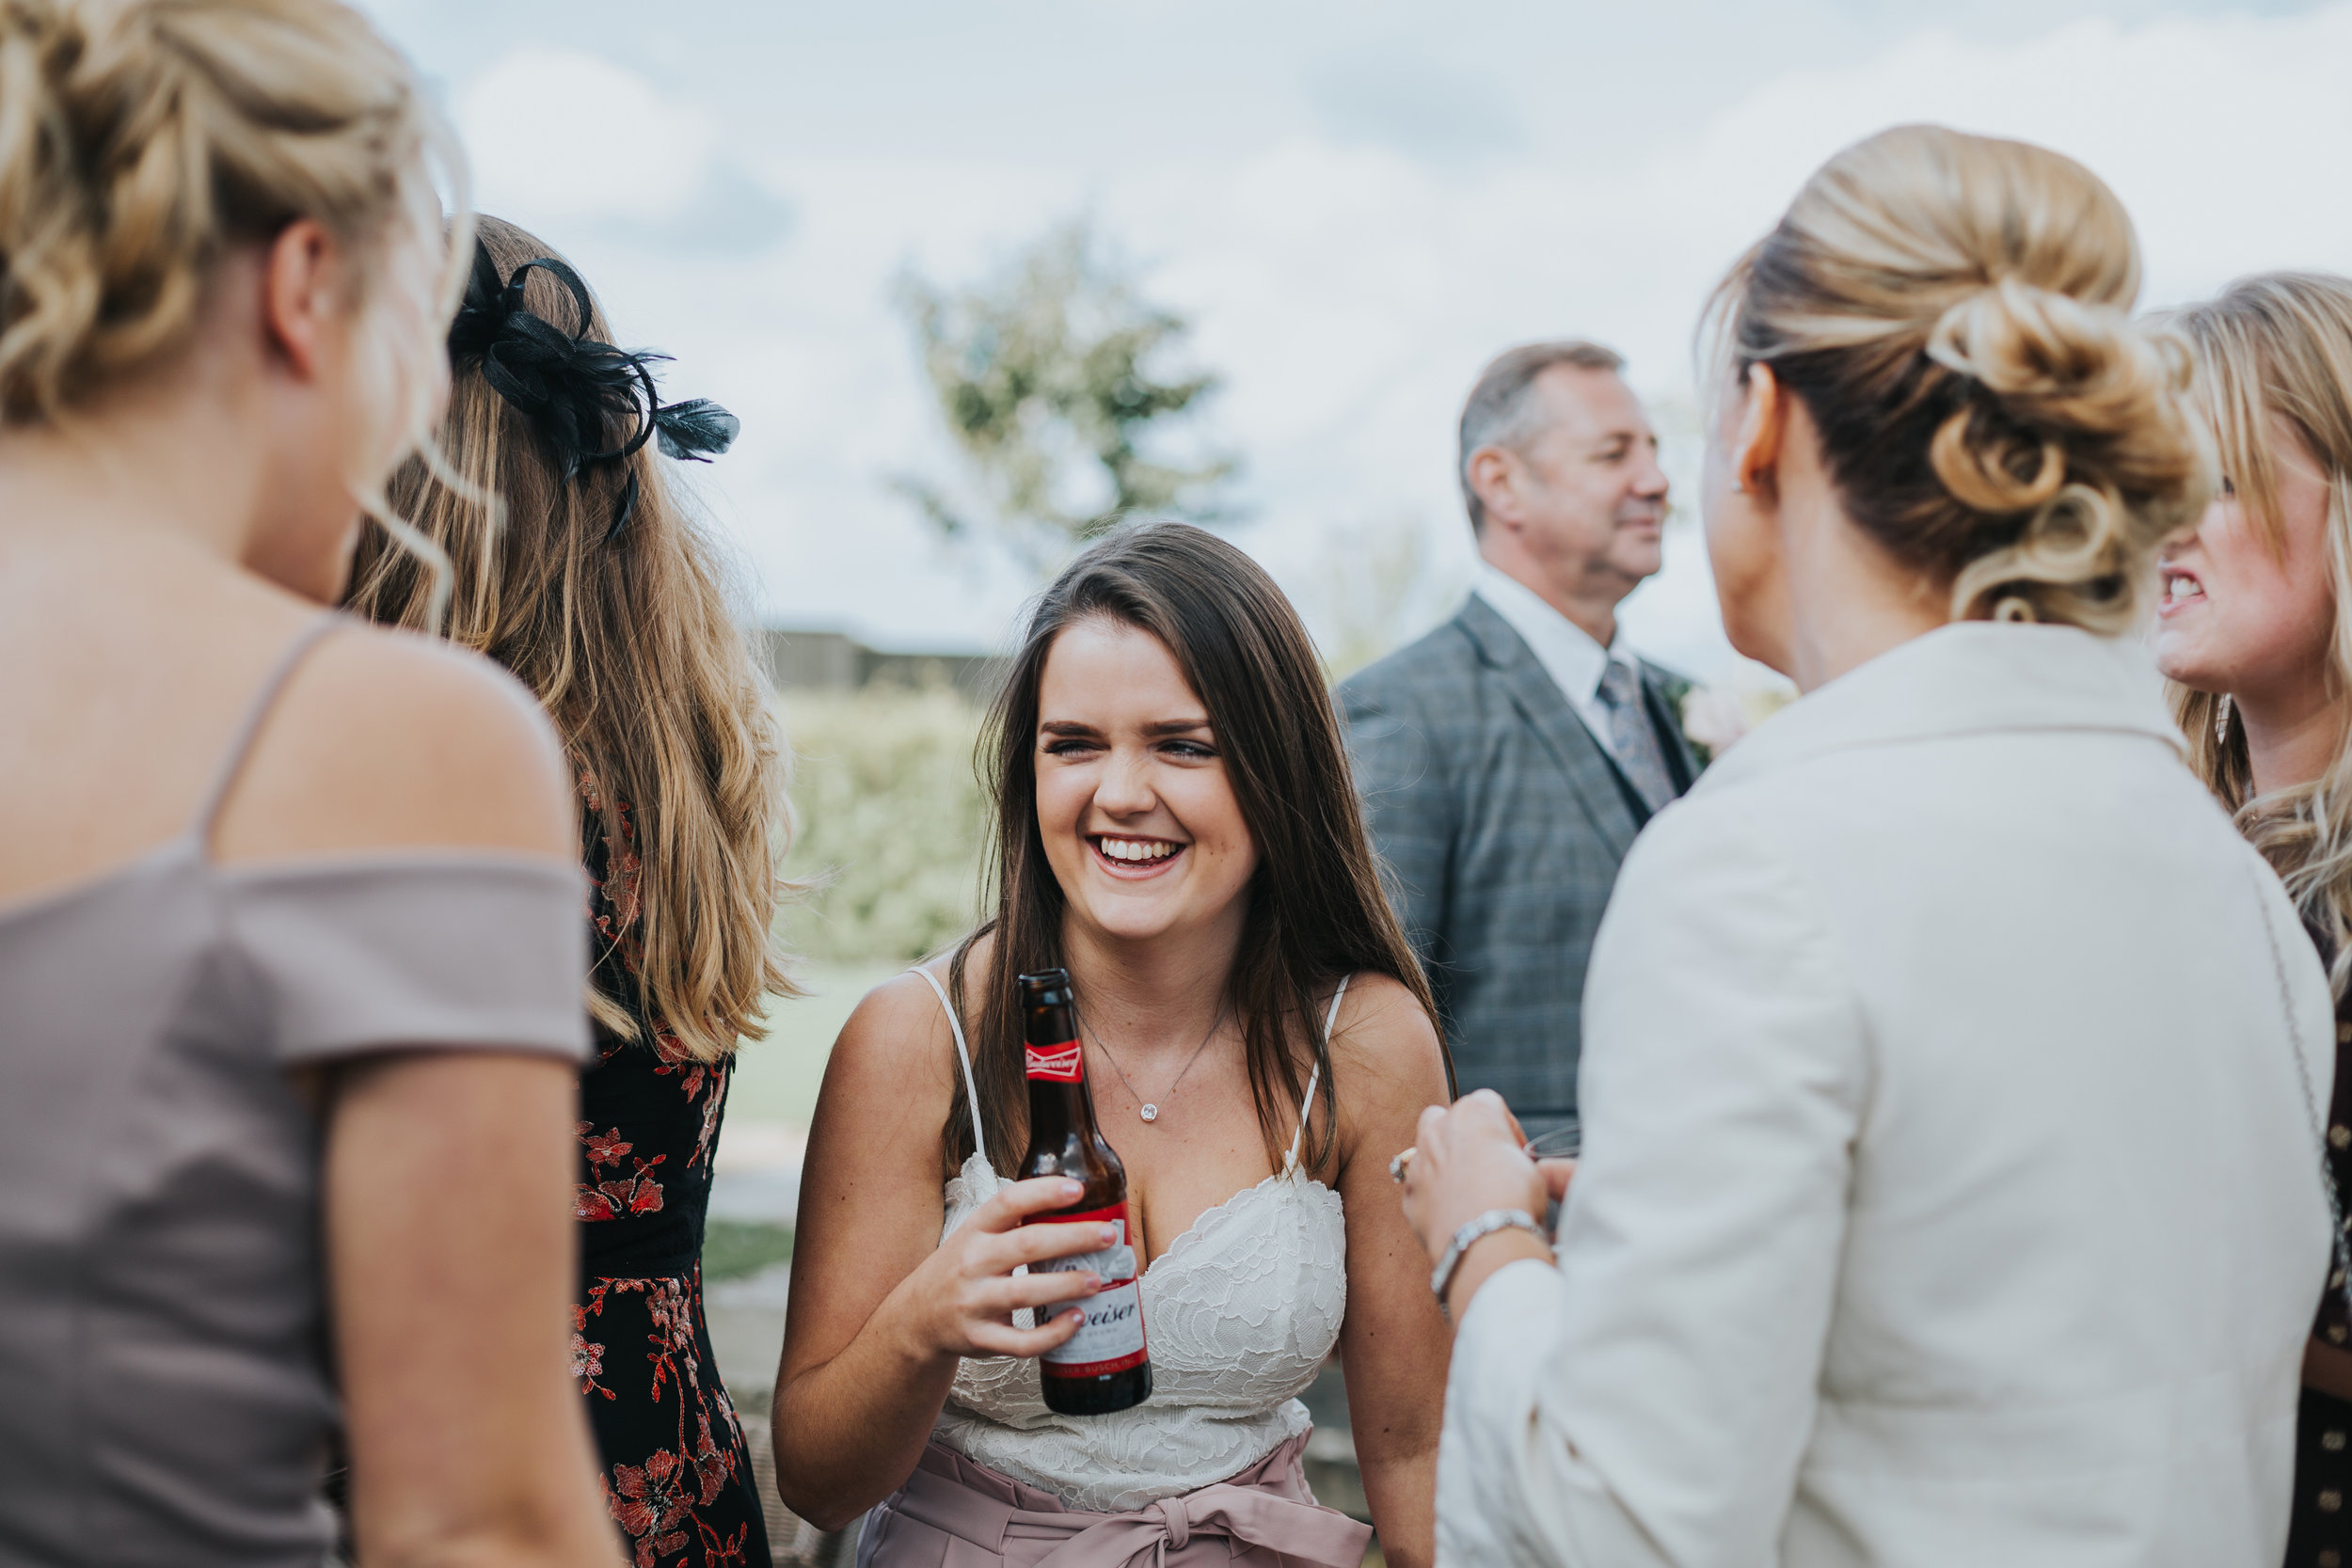 Girl has a beer with her mates at a wedding.